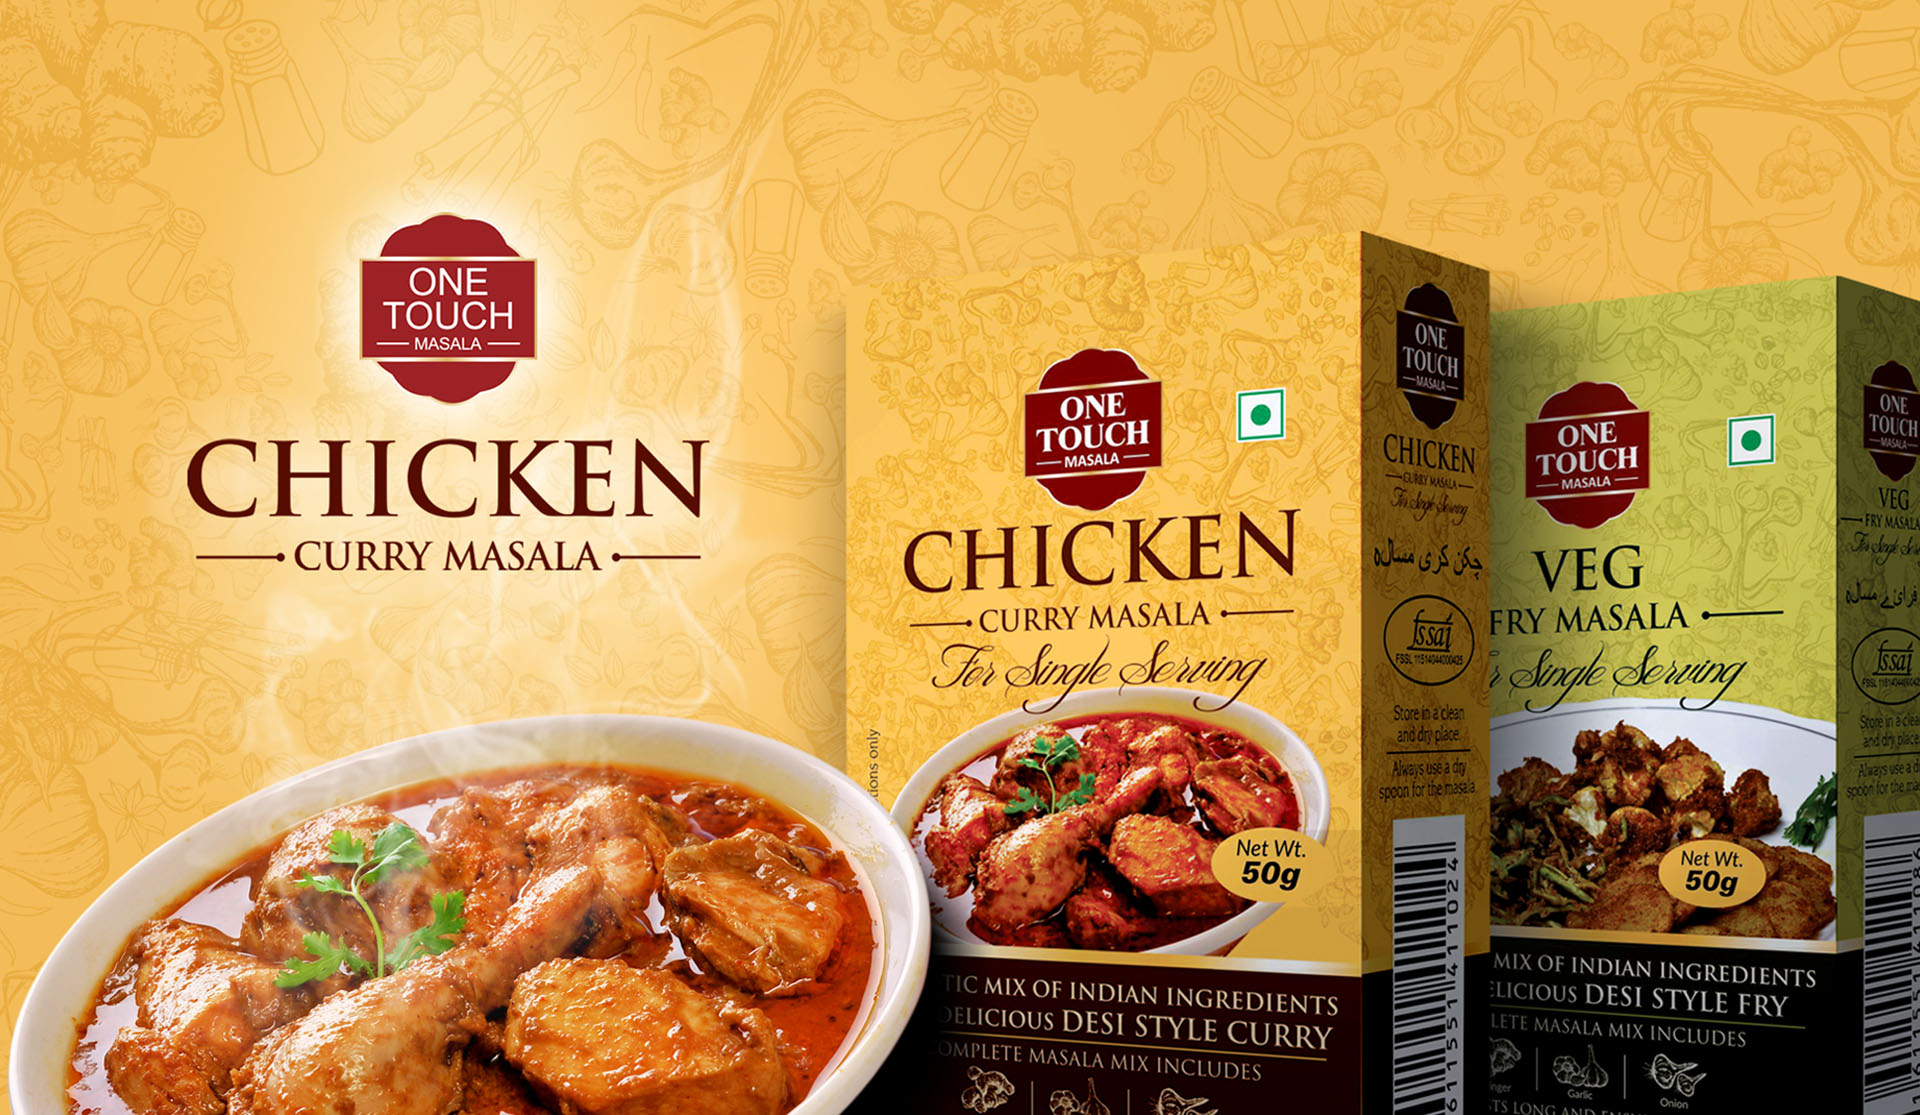 One Touch Masala – Chicken Curry Masala 3